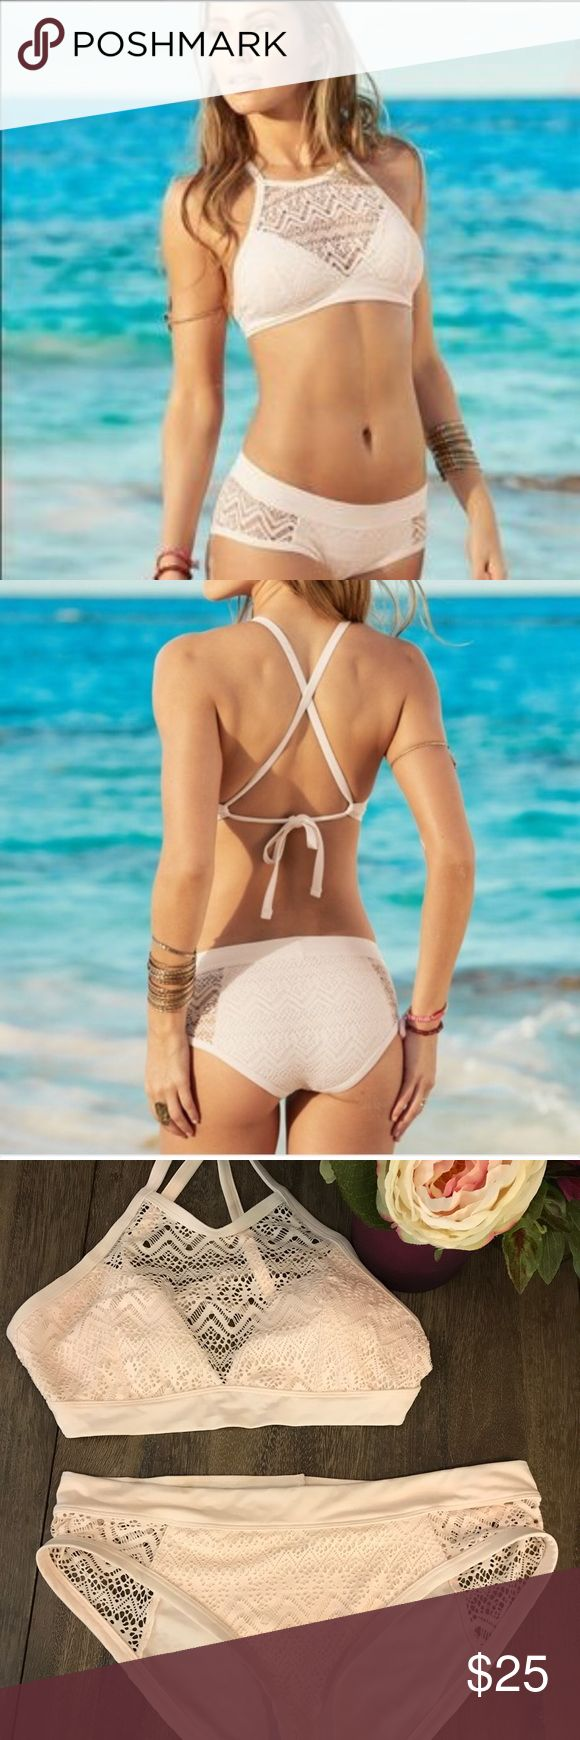 Lionna Beige/Cream Crochet Bikini NWT-Large Beautiful Creamy Beige Crochet Lionna Bikini Set in Size Large! Purchased from adore me but decided to buy something else. This is New with Tags! Adore Me Swim Bikinis